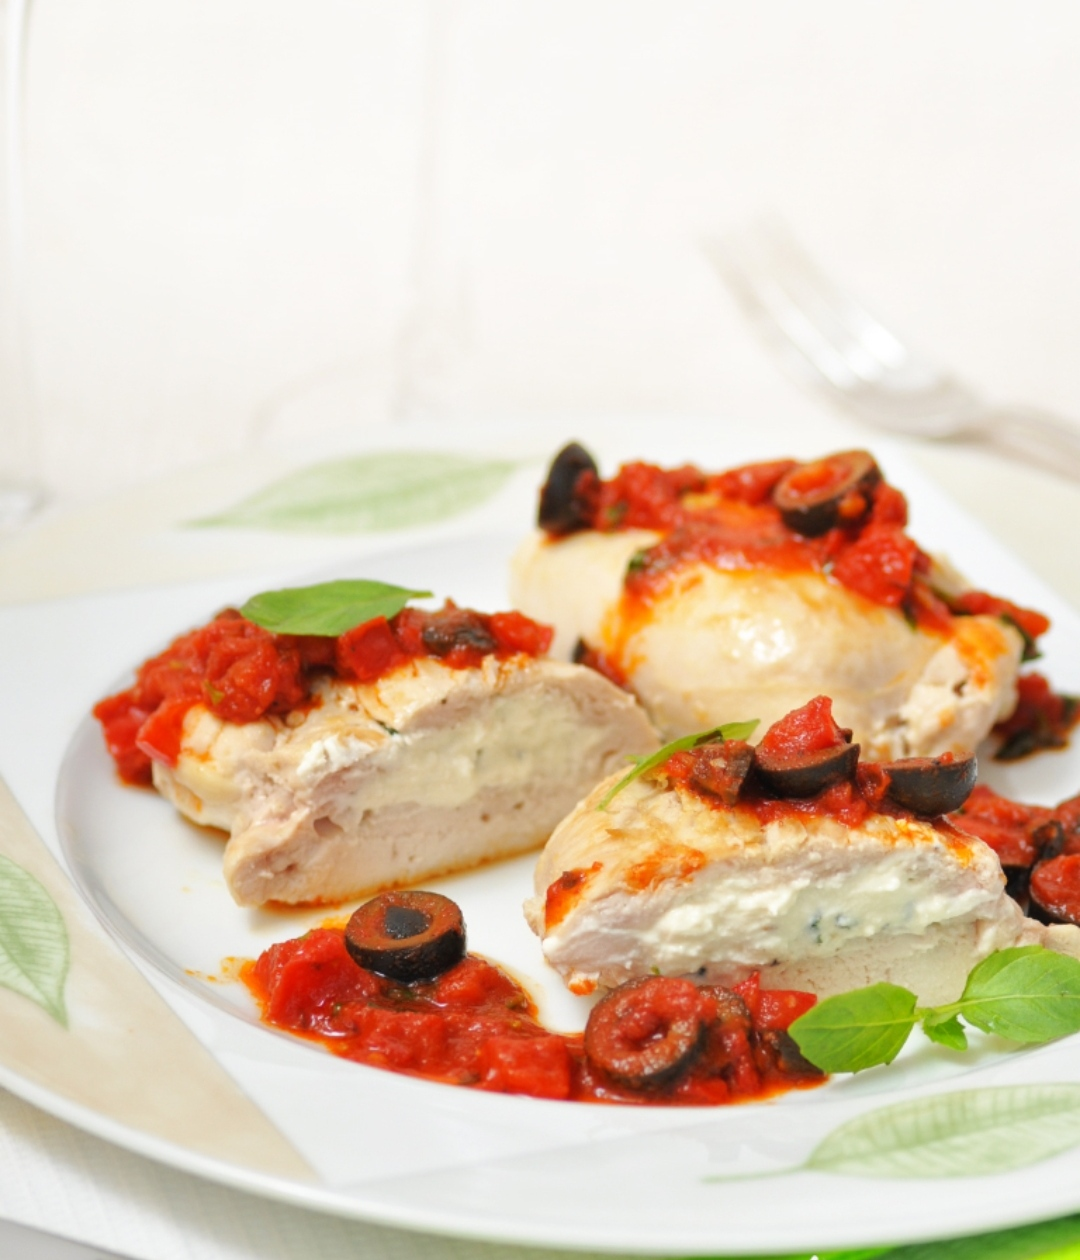 Chicken breast pockets with feta cheese and tomato sauce